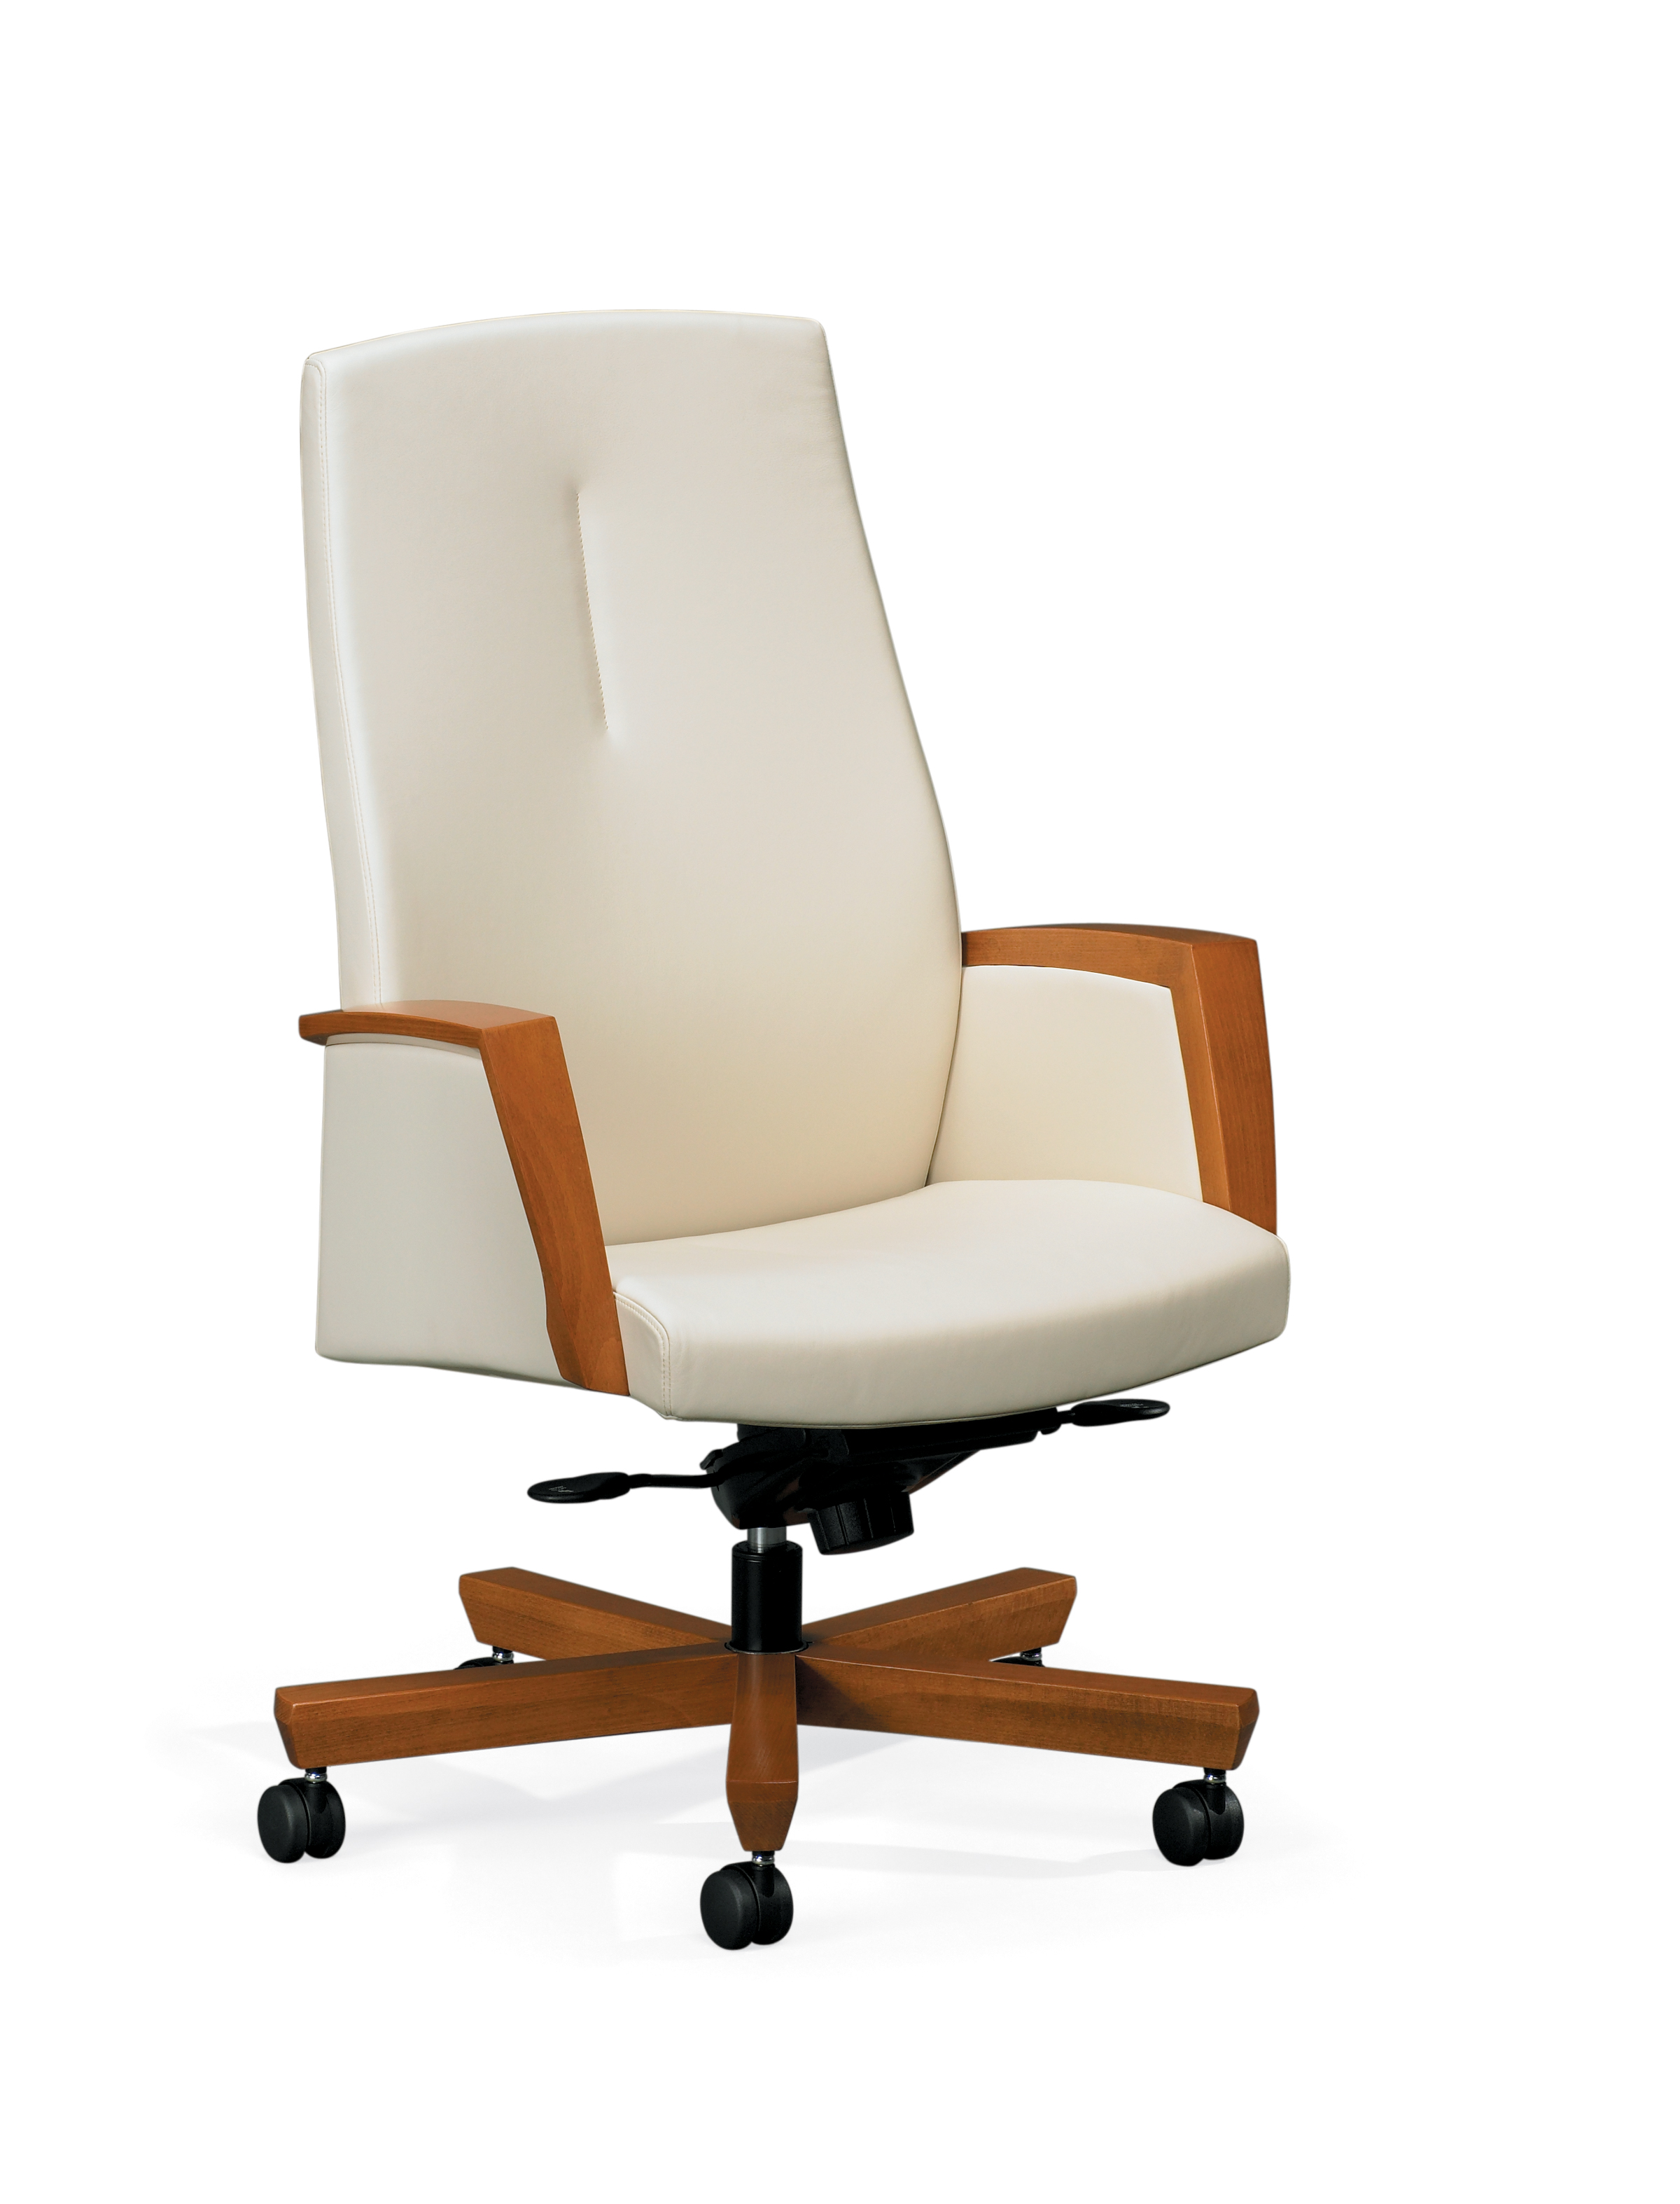 Tan leather office chair - Paoli Diverge High Back Office Chair With Knee Tilt Control